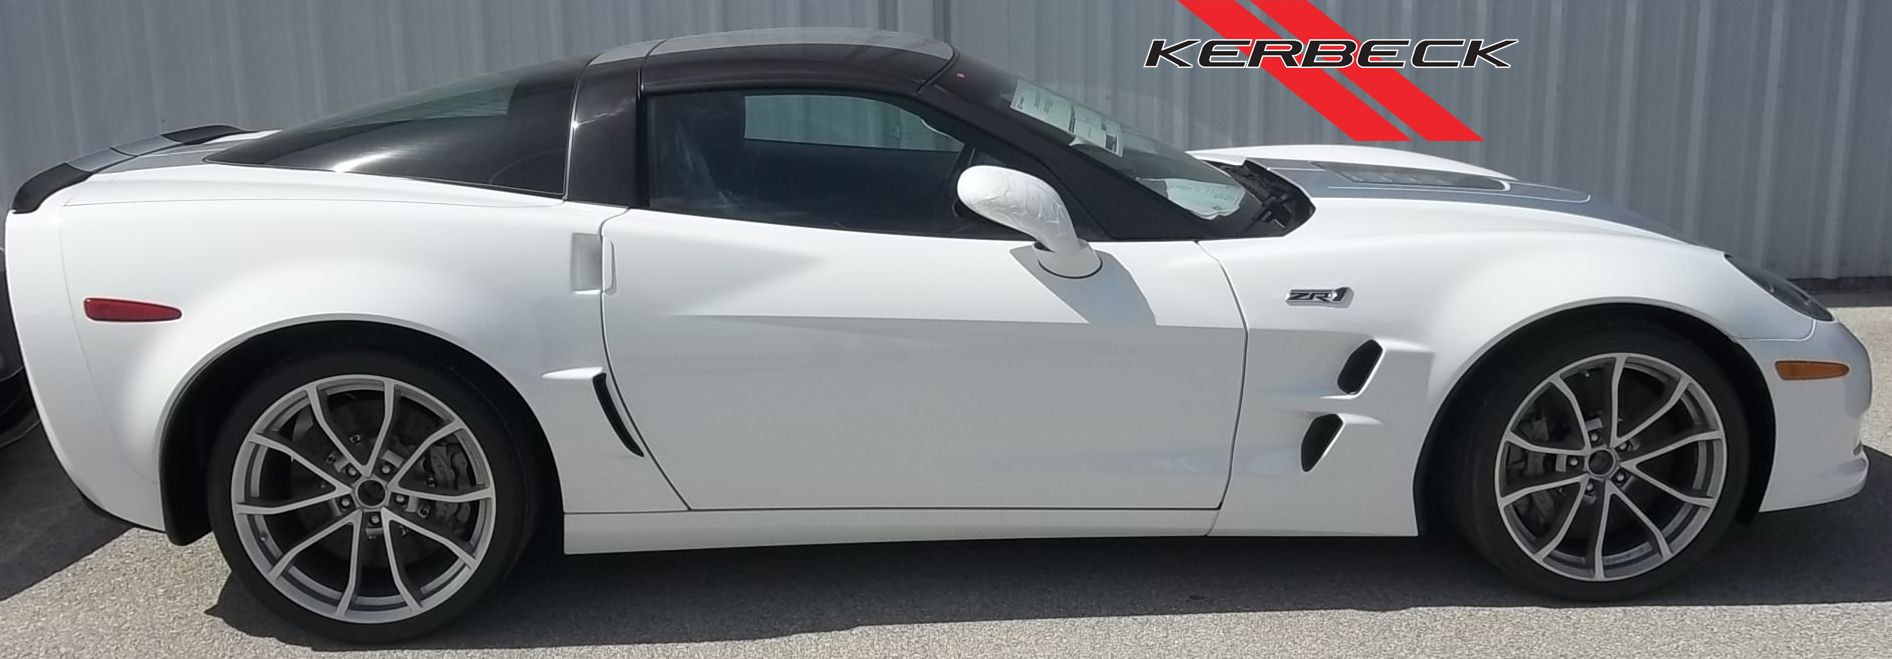 2013 Corvette ZR1 with the 60th Anniversary Package